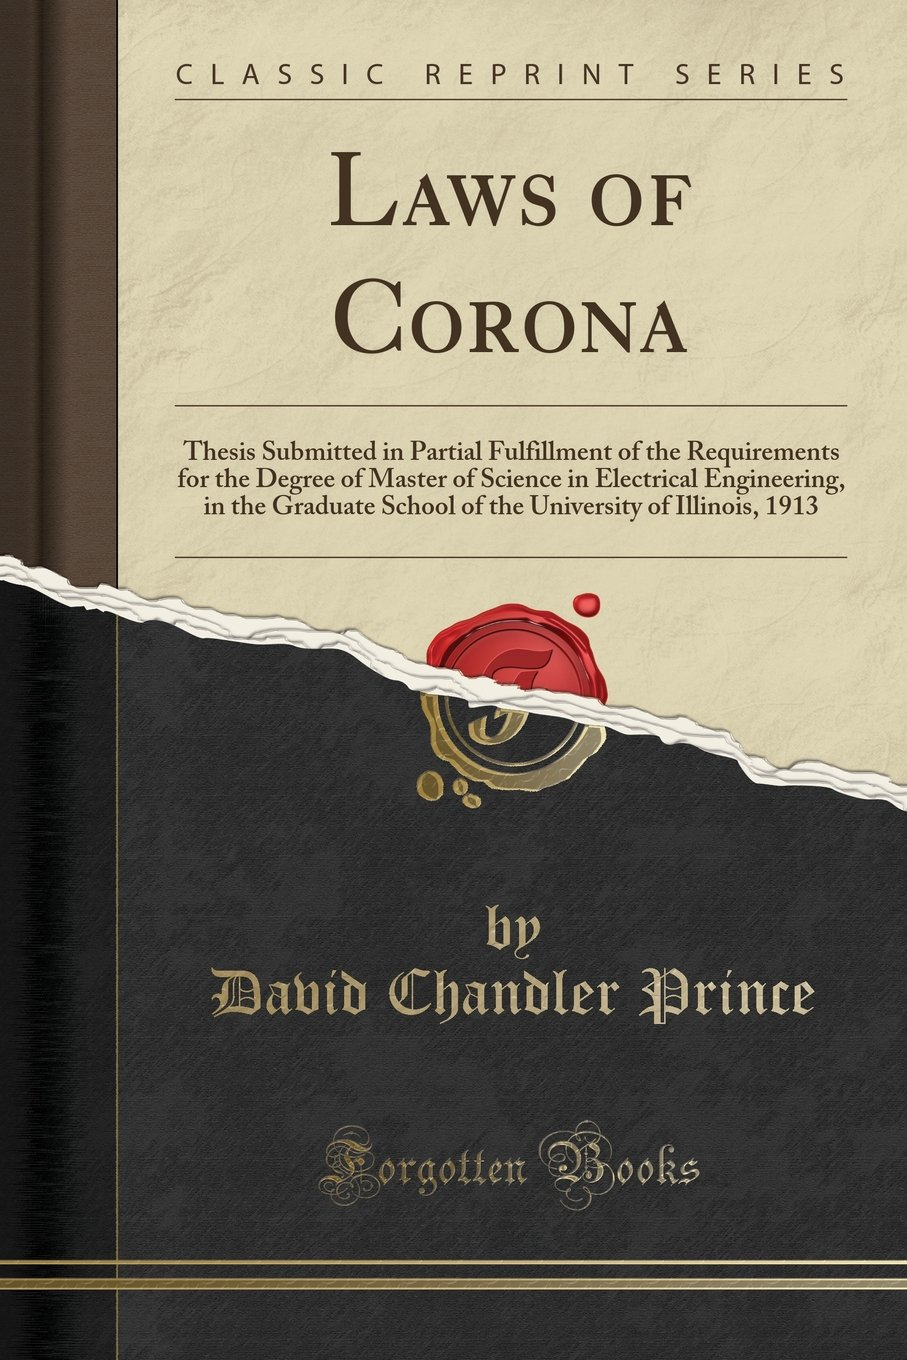 Download Laws of Corona: Thesis Submitted in Partial Fulfillment of the Requirements for the Degree of Master of Science in Electrical Engineering, in the ... of Illinois, 1913 (Classic Reprint) ebook